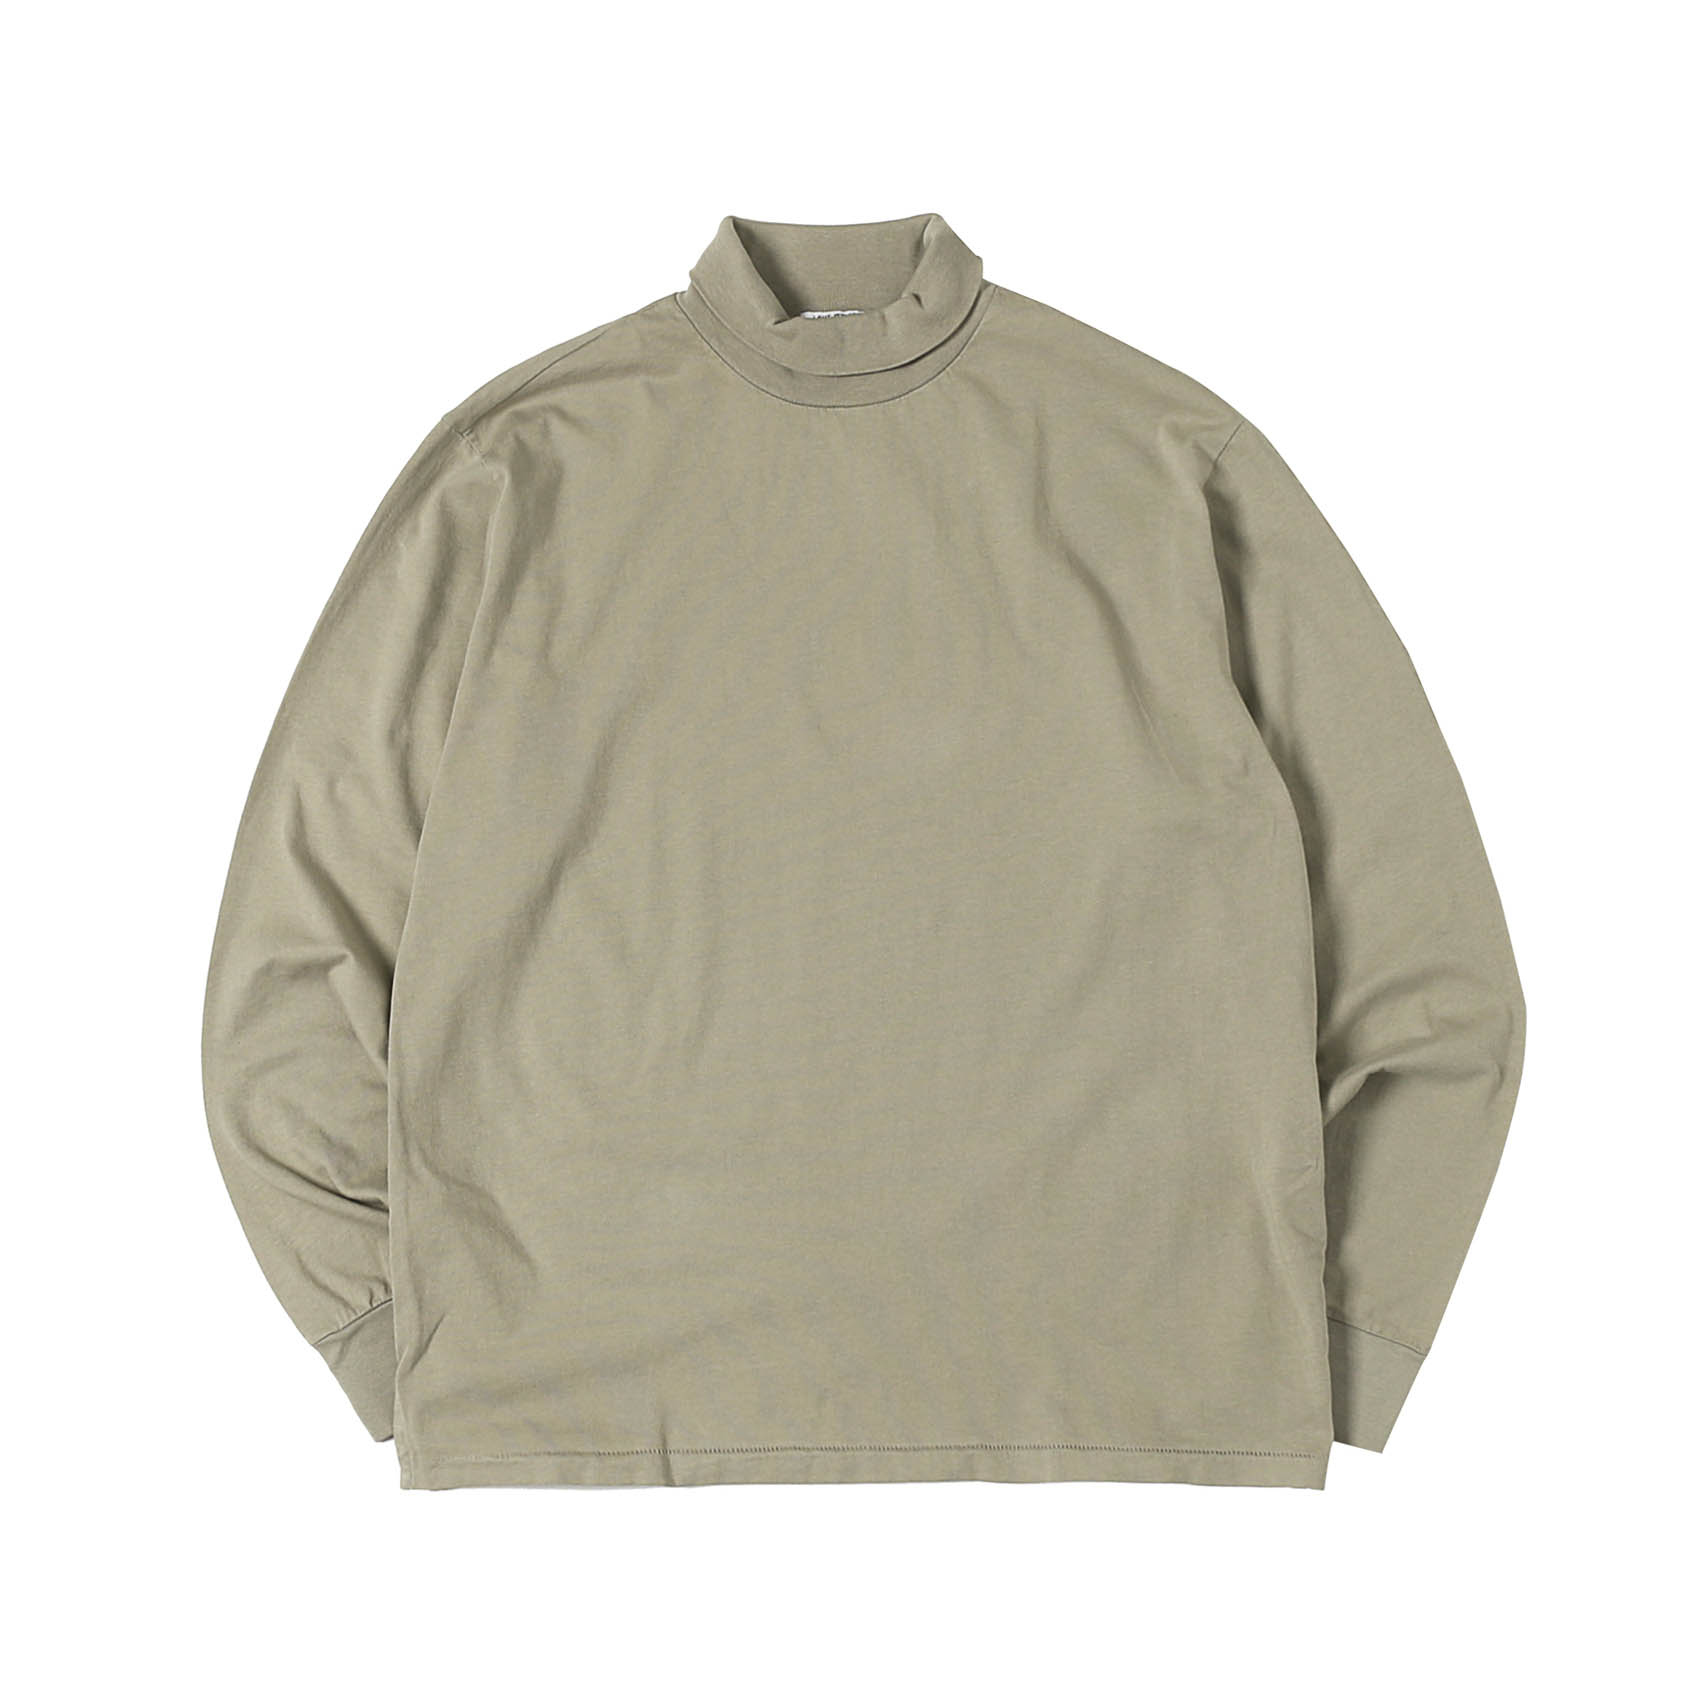 L/S TURTLENECK - TAUPE FOG